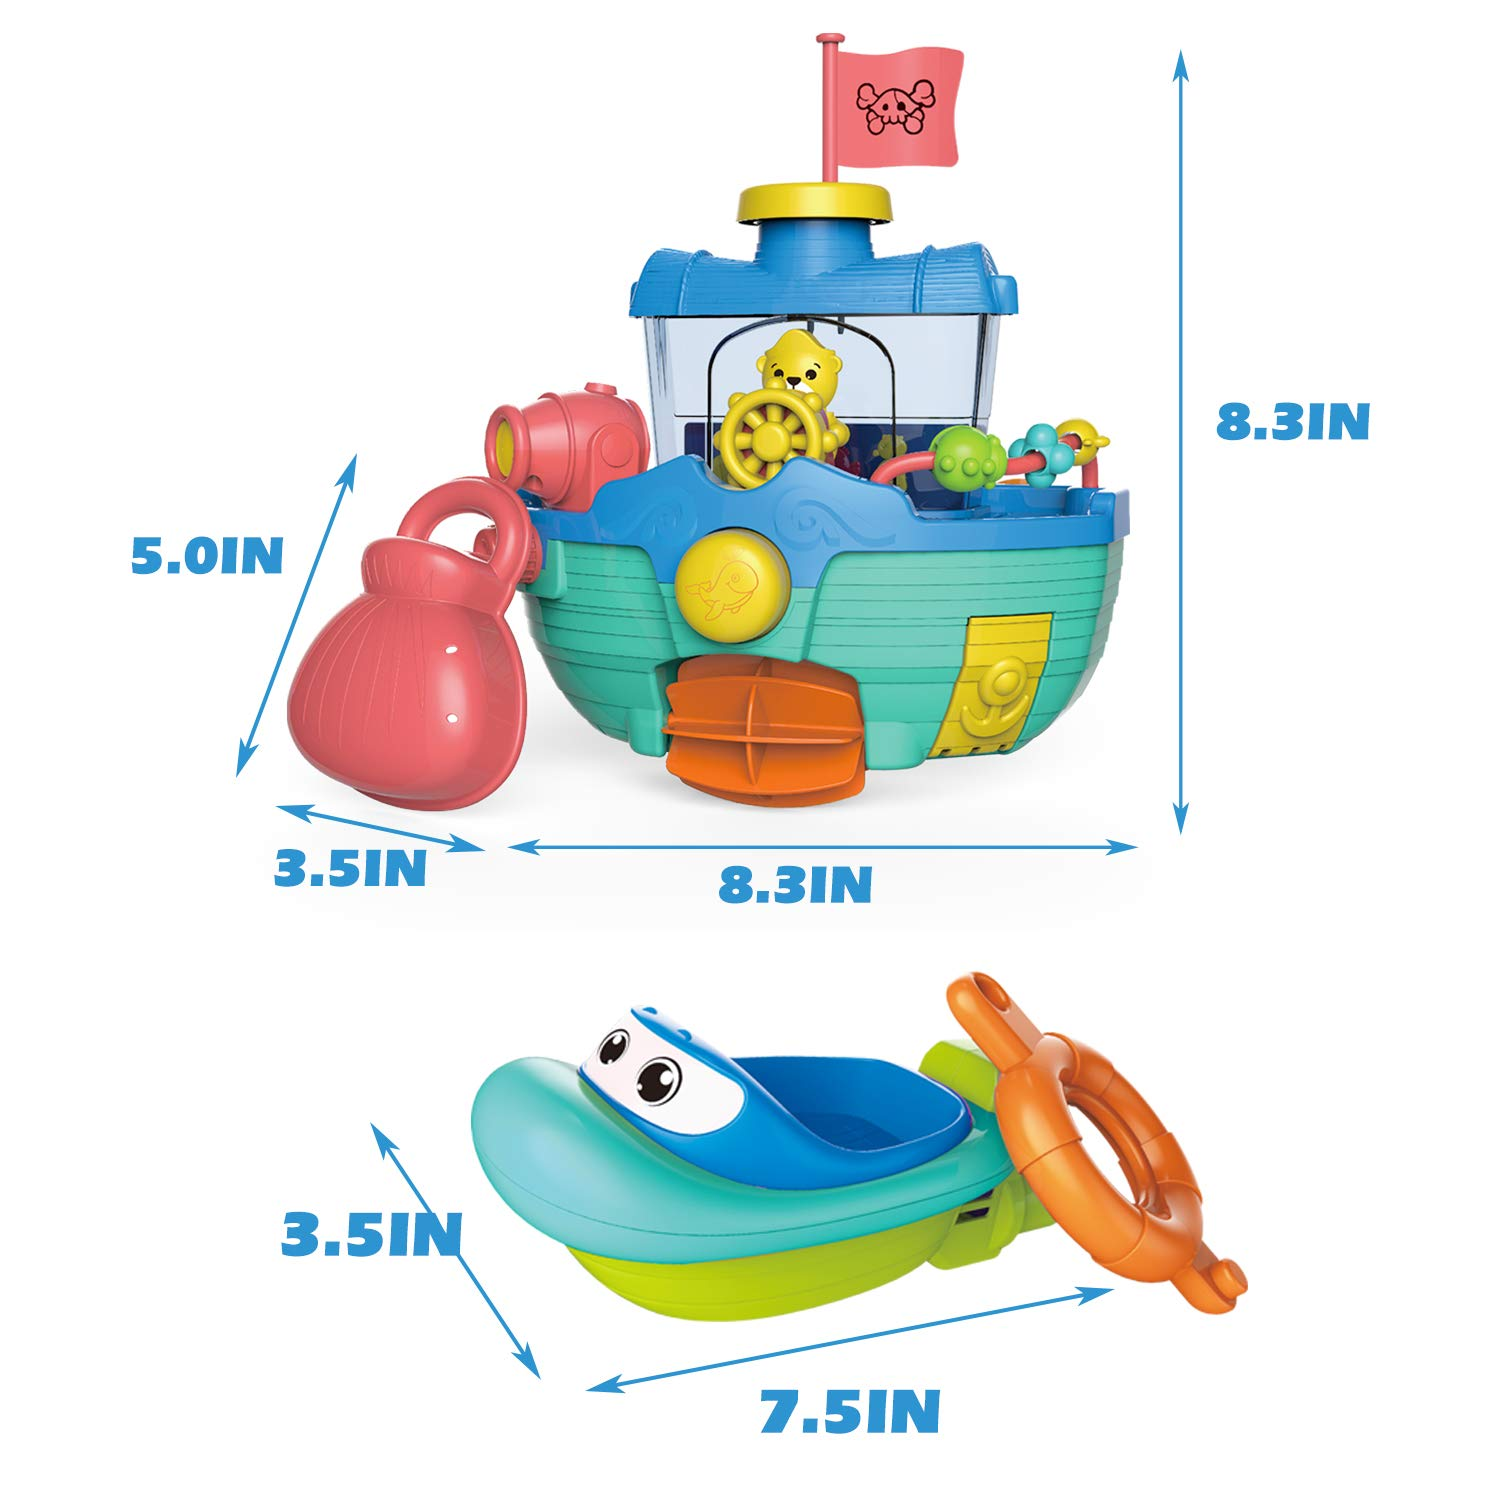 Fun Little Toys Toddler Bath Toy Boats Set Bathtub Water Toys for Boys and Girls 2 Bath Boats for Kids